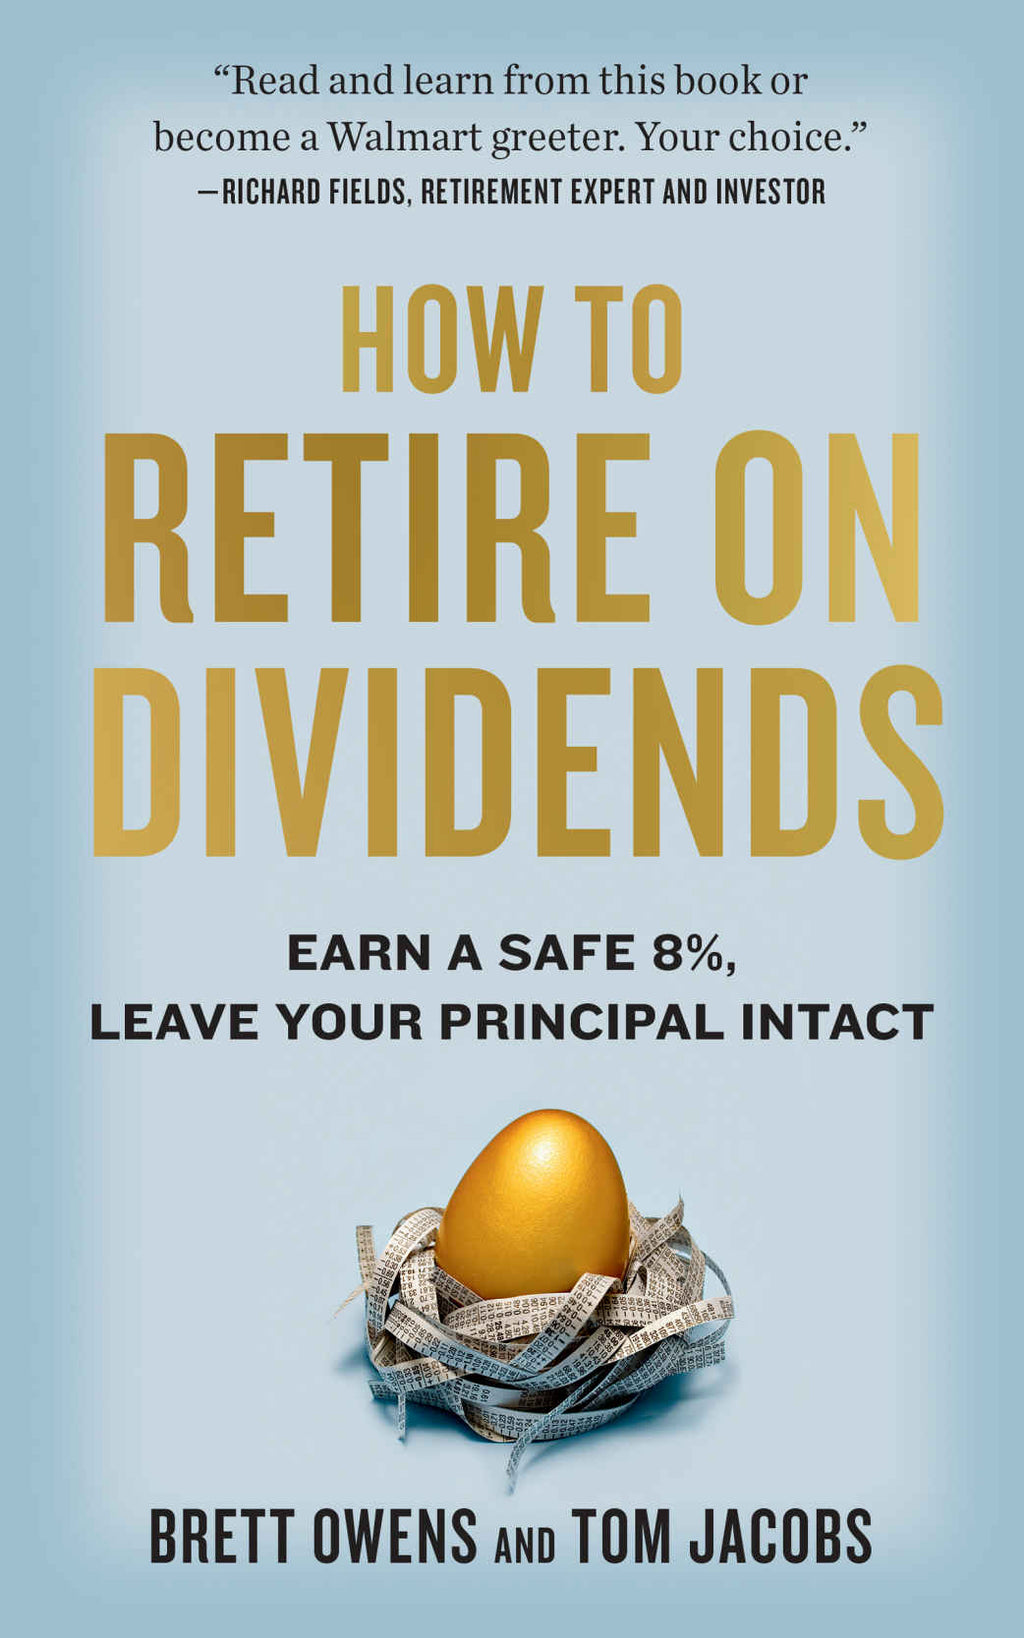 How to Retire on Dividends